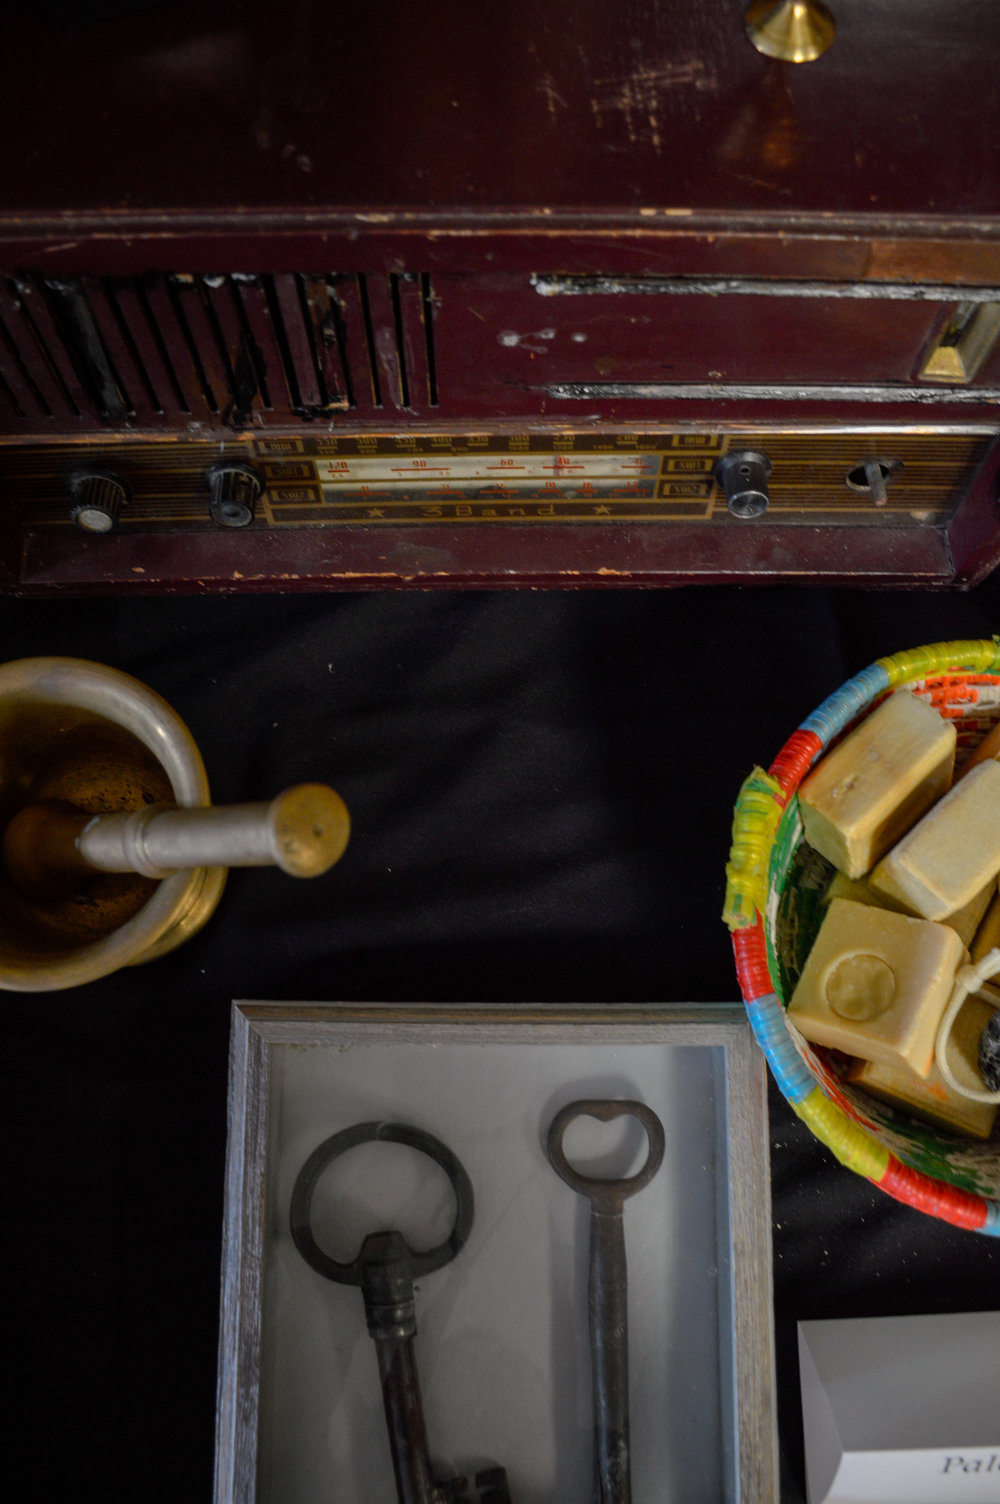 Artifacts on display at Broken Film Festival, including a pair of old keys and handmade soaps